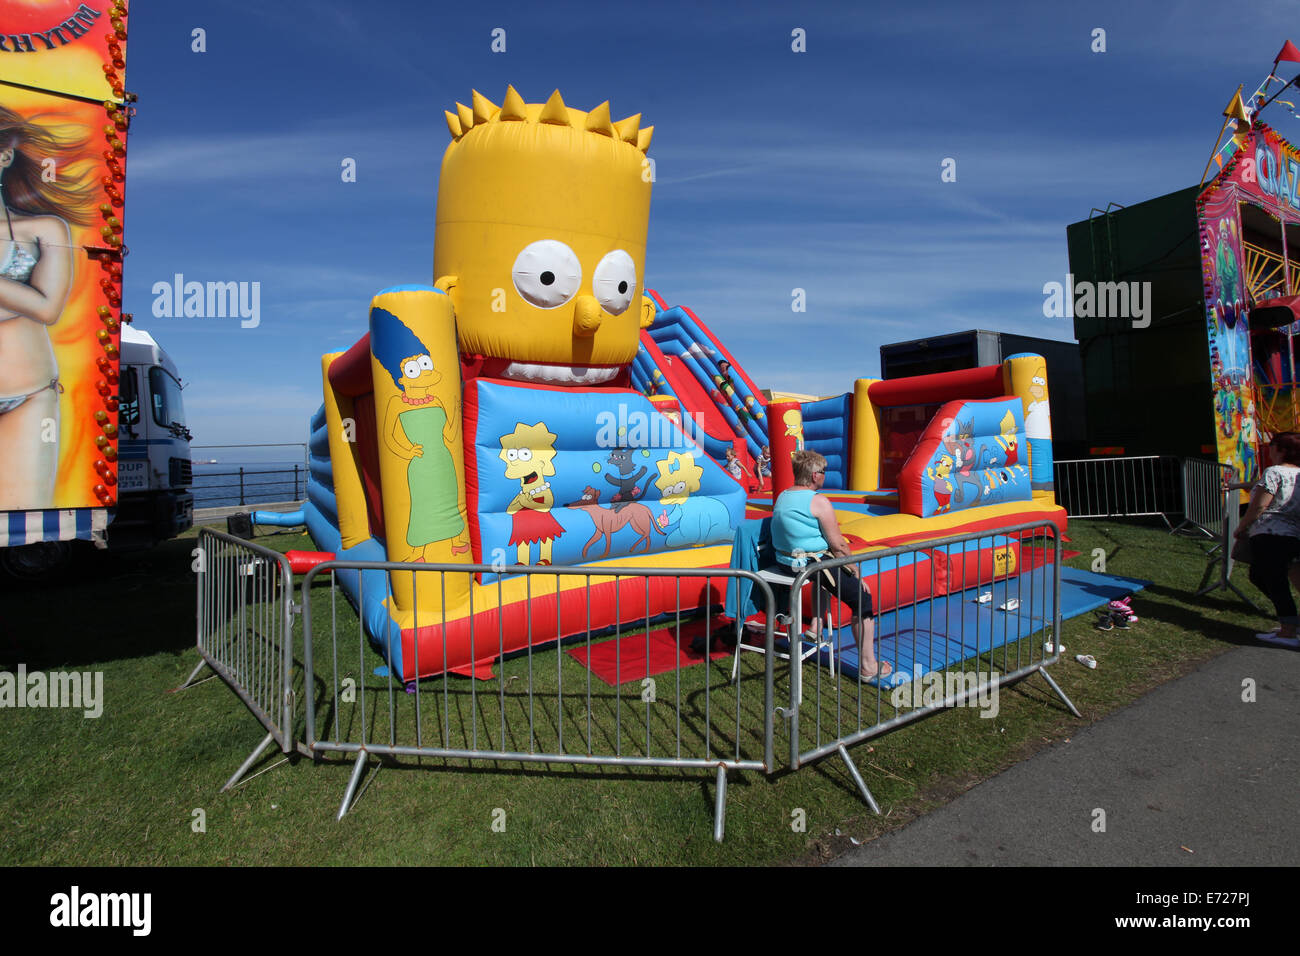 A bart simpson bouncy castle at a funfair - Stock Image